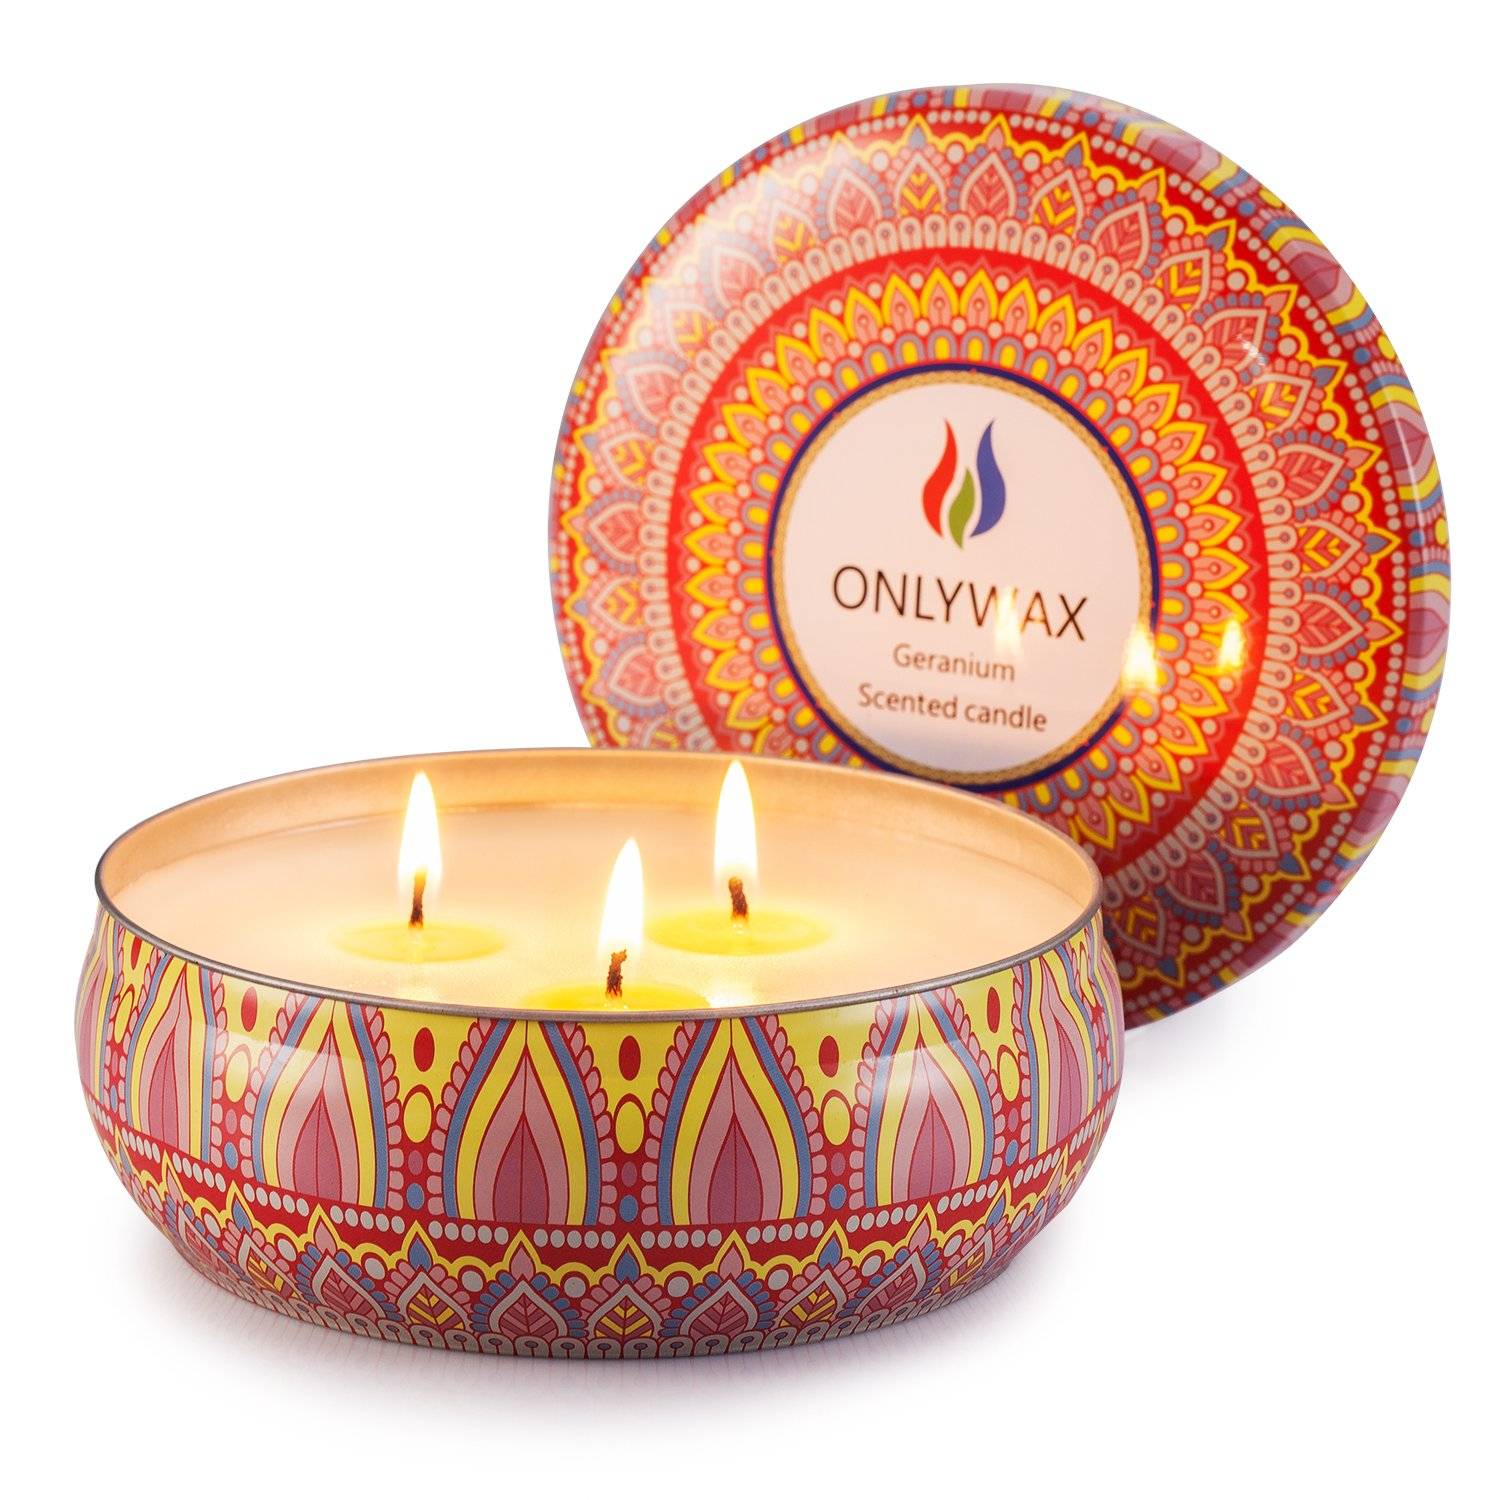 Scented Candles Soy Wax 3 Wick Tin 70 Hour Burn,Essential Oils-for Stress Relief and Relaxation,Outdoor and Indoor B078PG8QFC Geranium